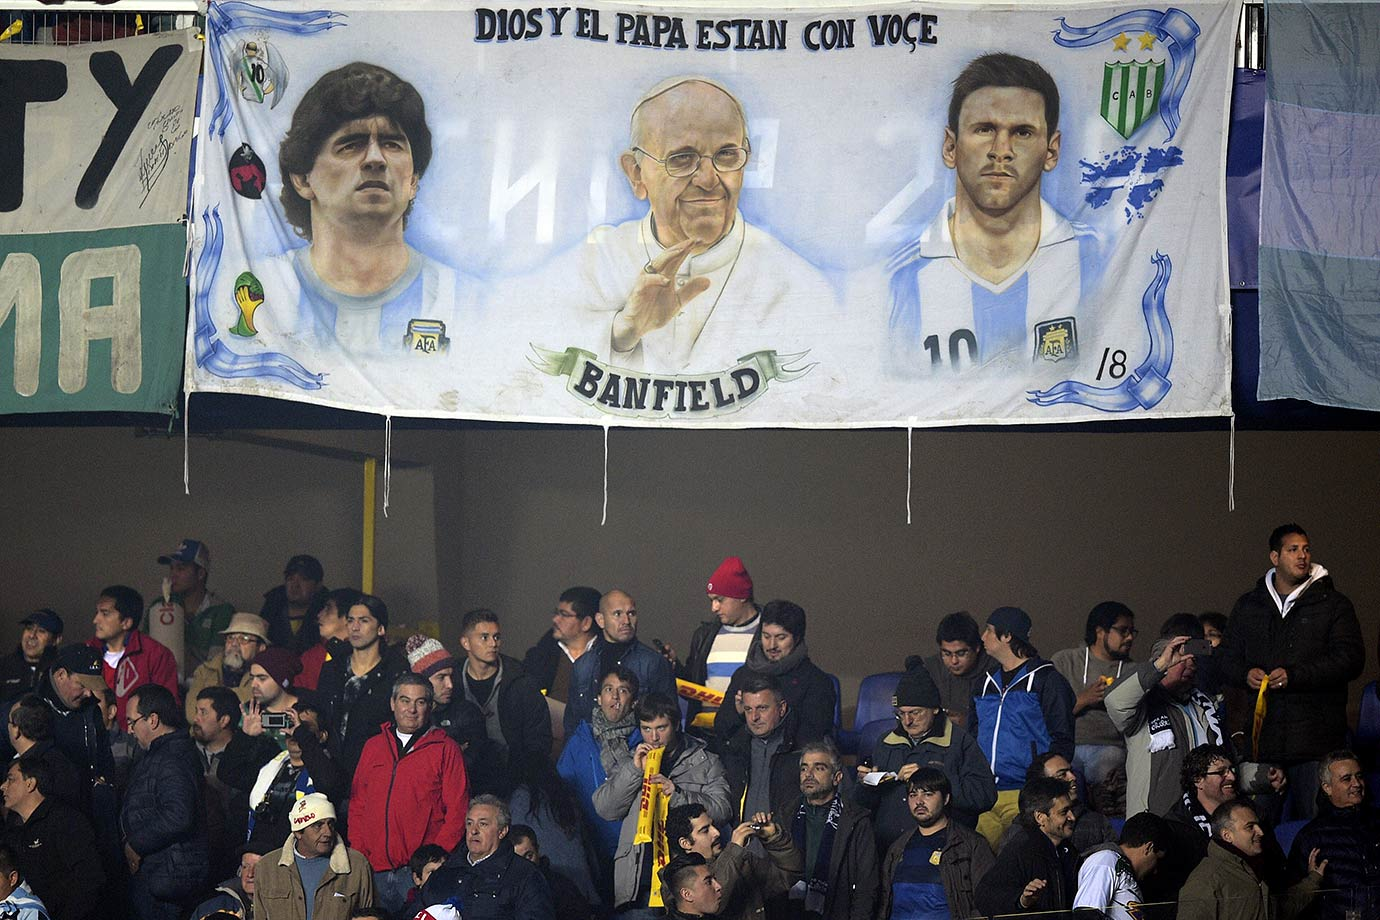 A banner depicting Diego Maradona, Pope Francis and Lionel Messi hangs before the start of Argentina's Copa America semifinal match against Paraguay on June 30, 2015 in Concepcion, Chile.